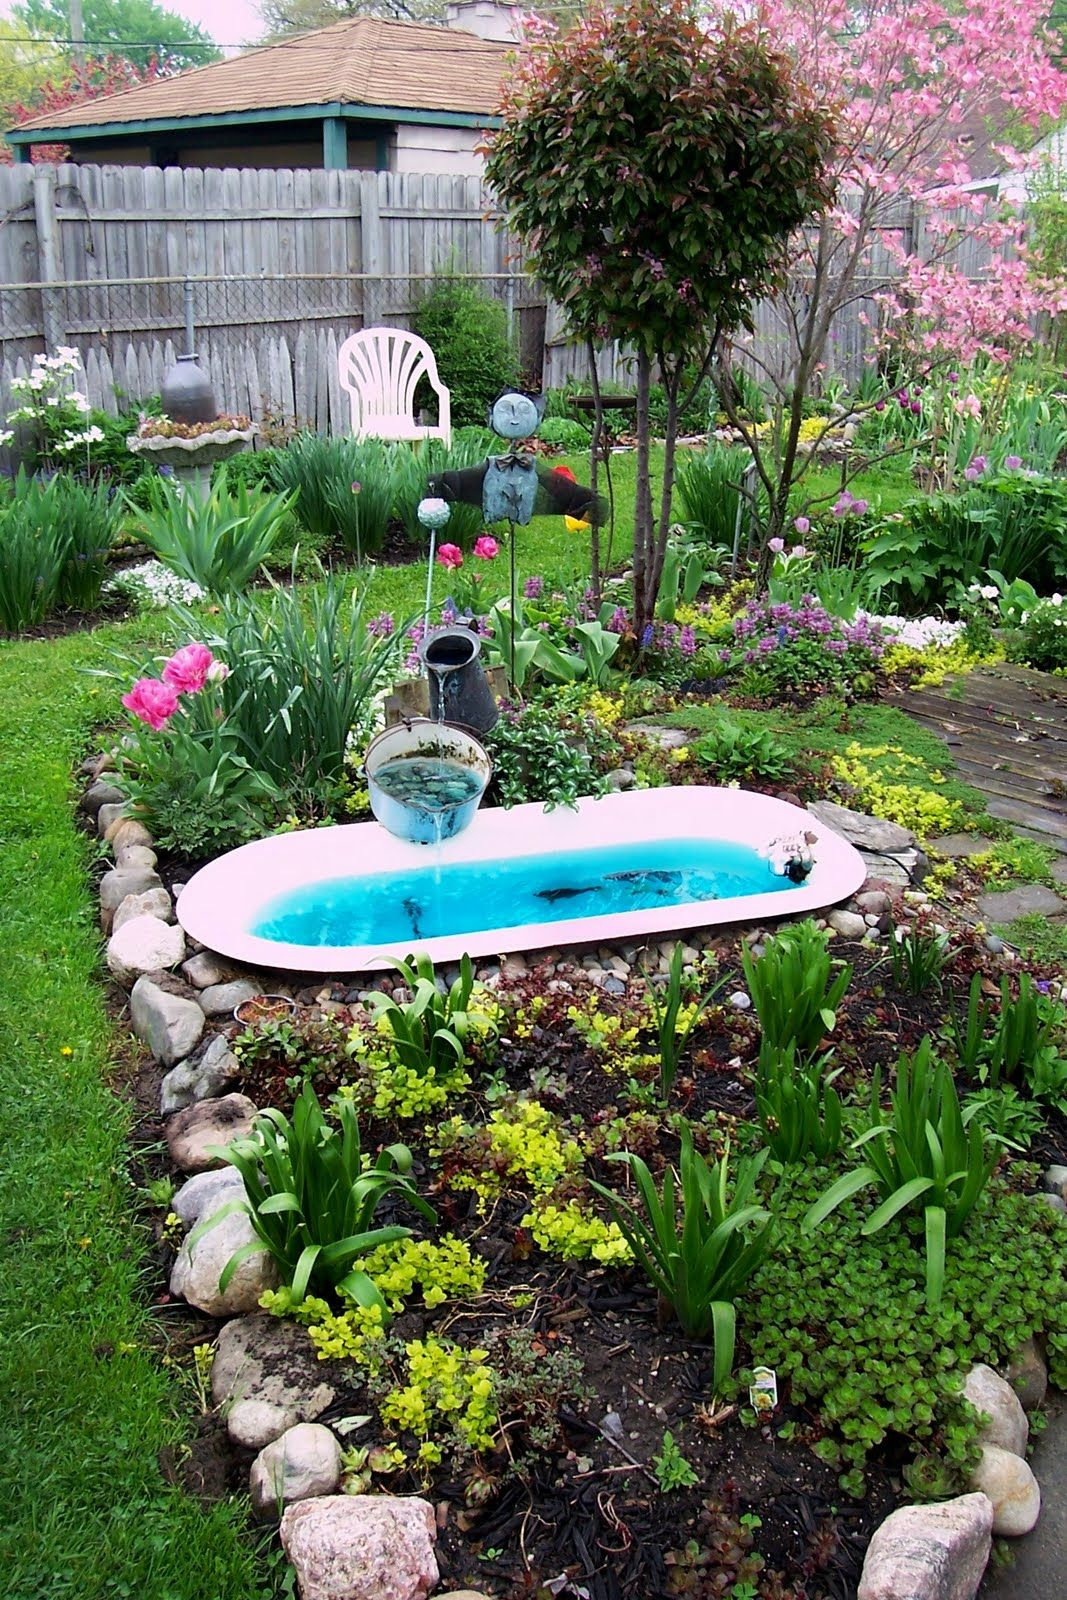 Crafty arty manoula recycling and repurposing ideas for for Recycled garden ideas pinterest